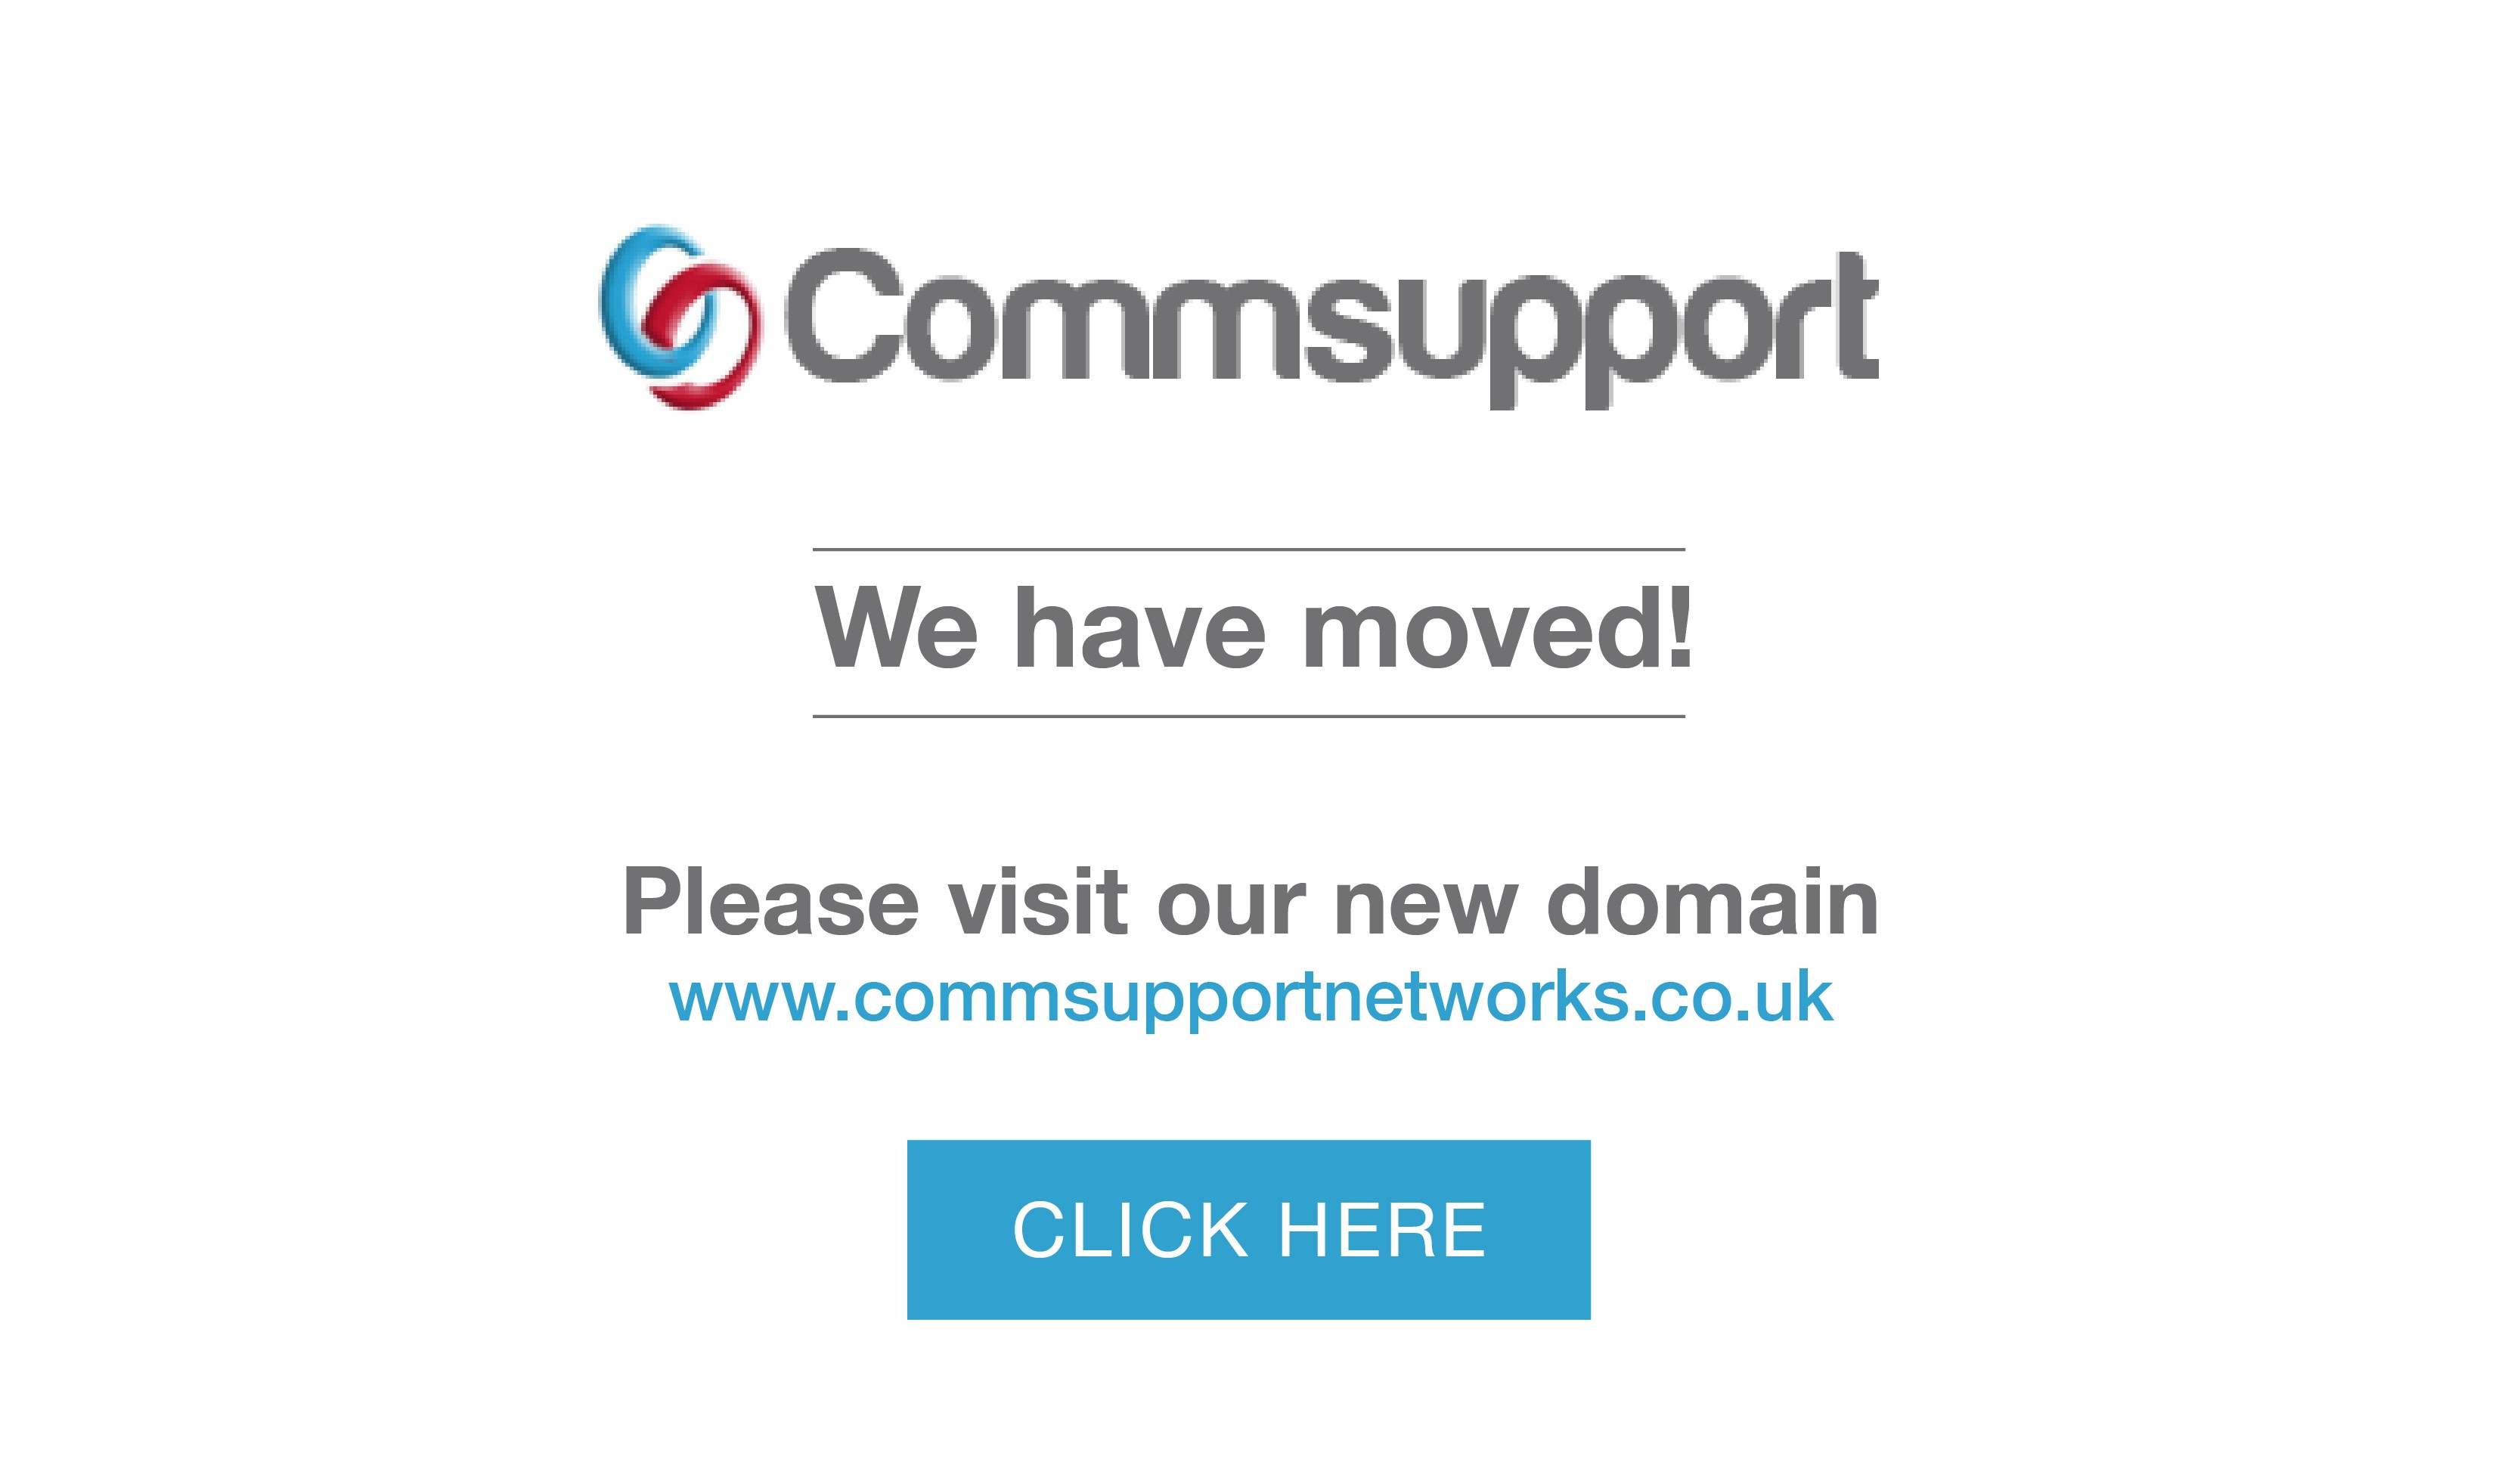 Commsupport.co.uk